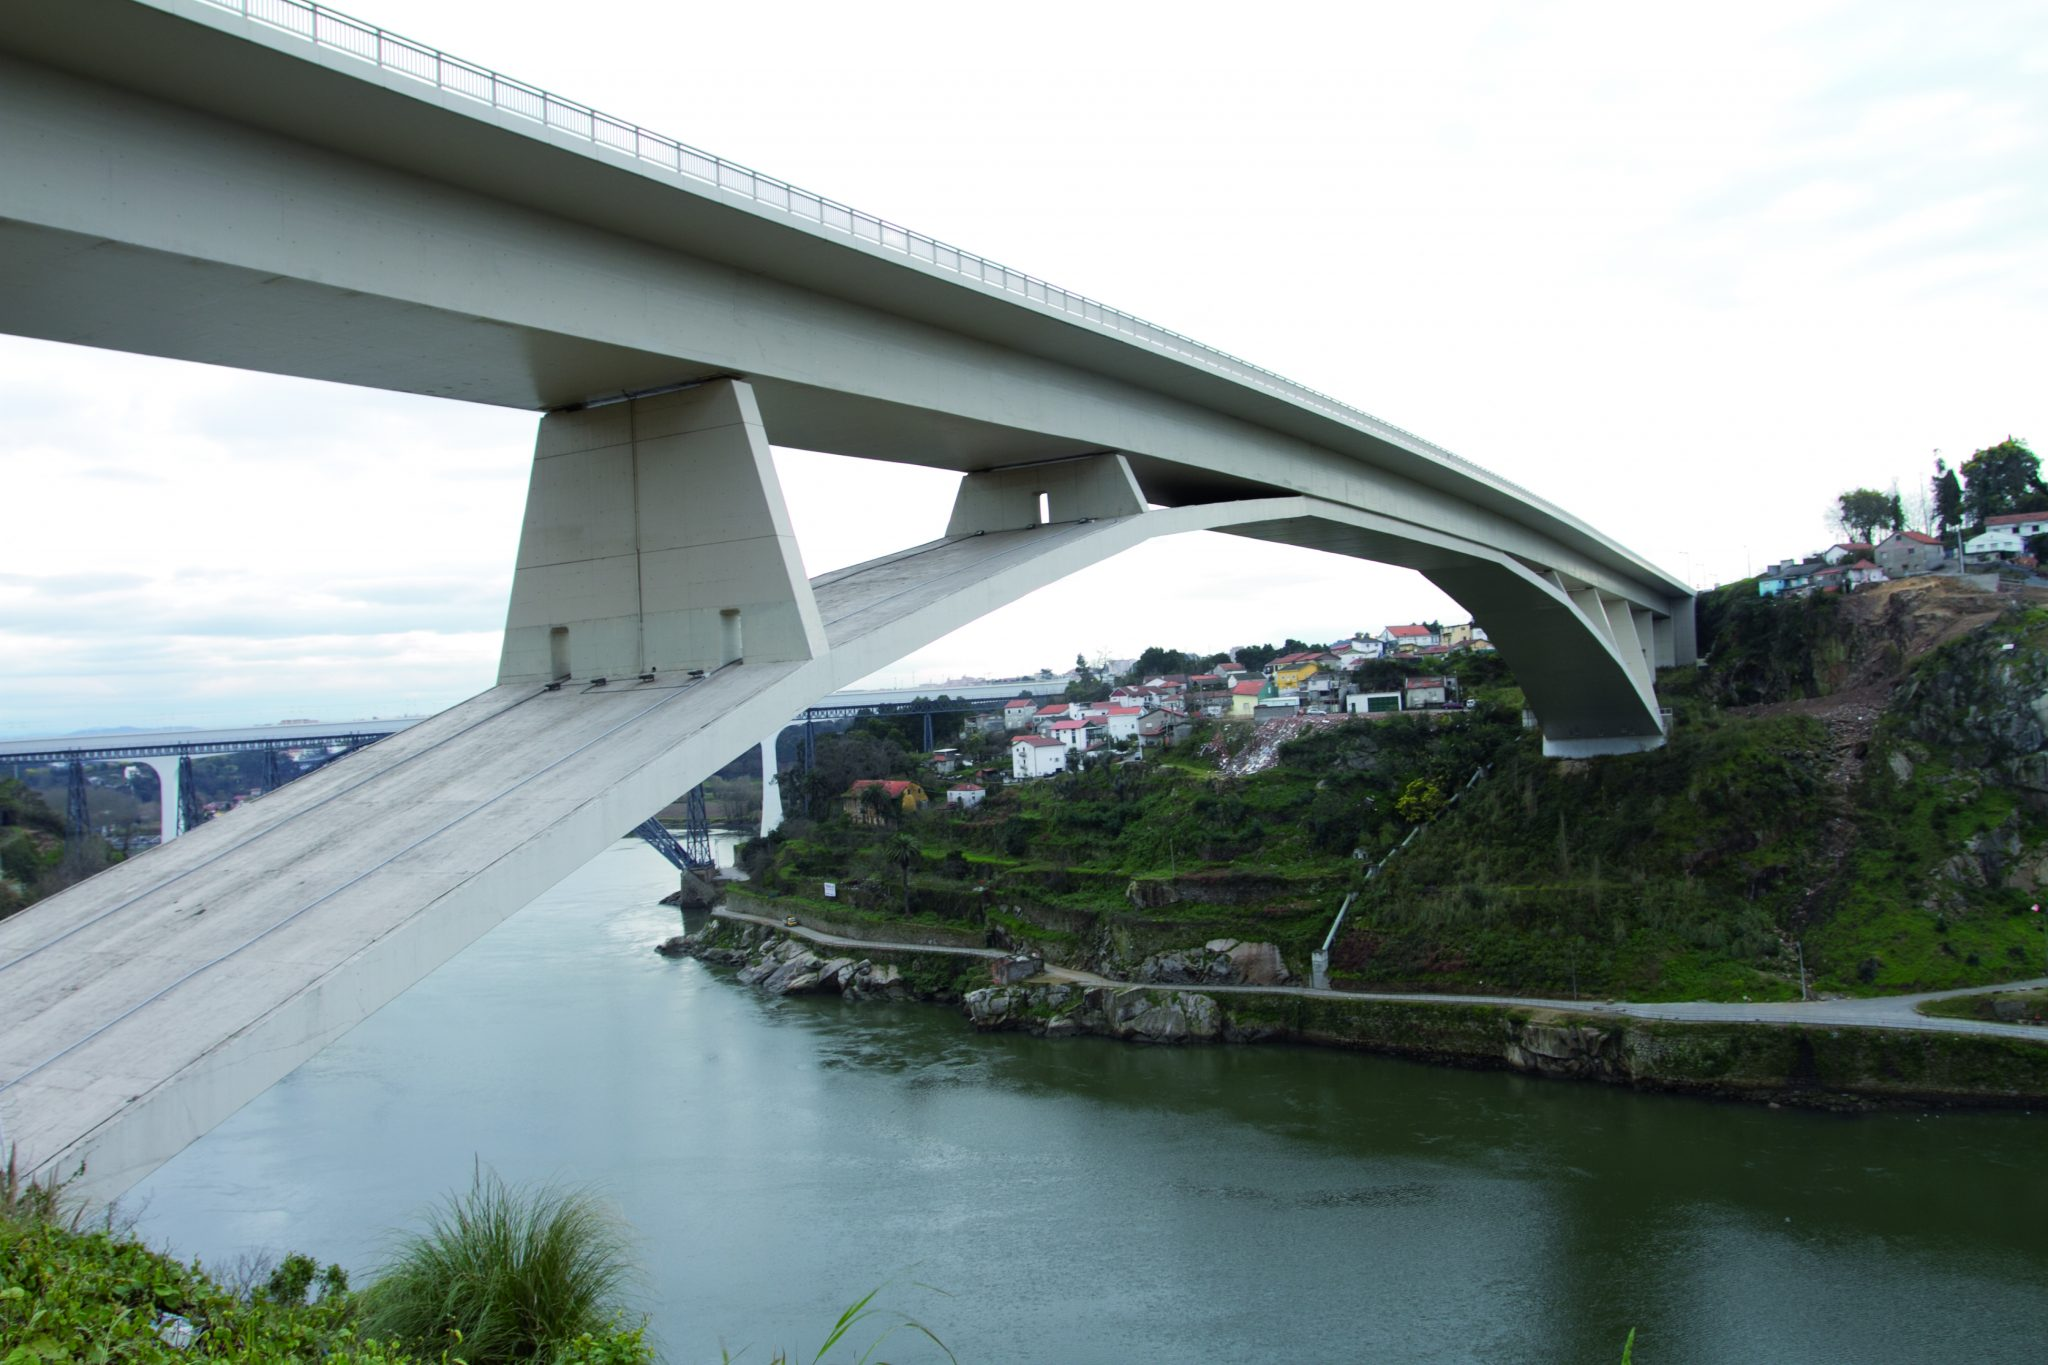 INFANTE DON HENRIQUE BRIDGE BY RUBRICA BRIDGES